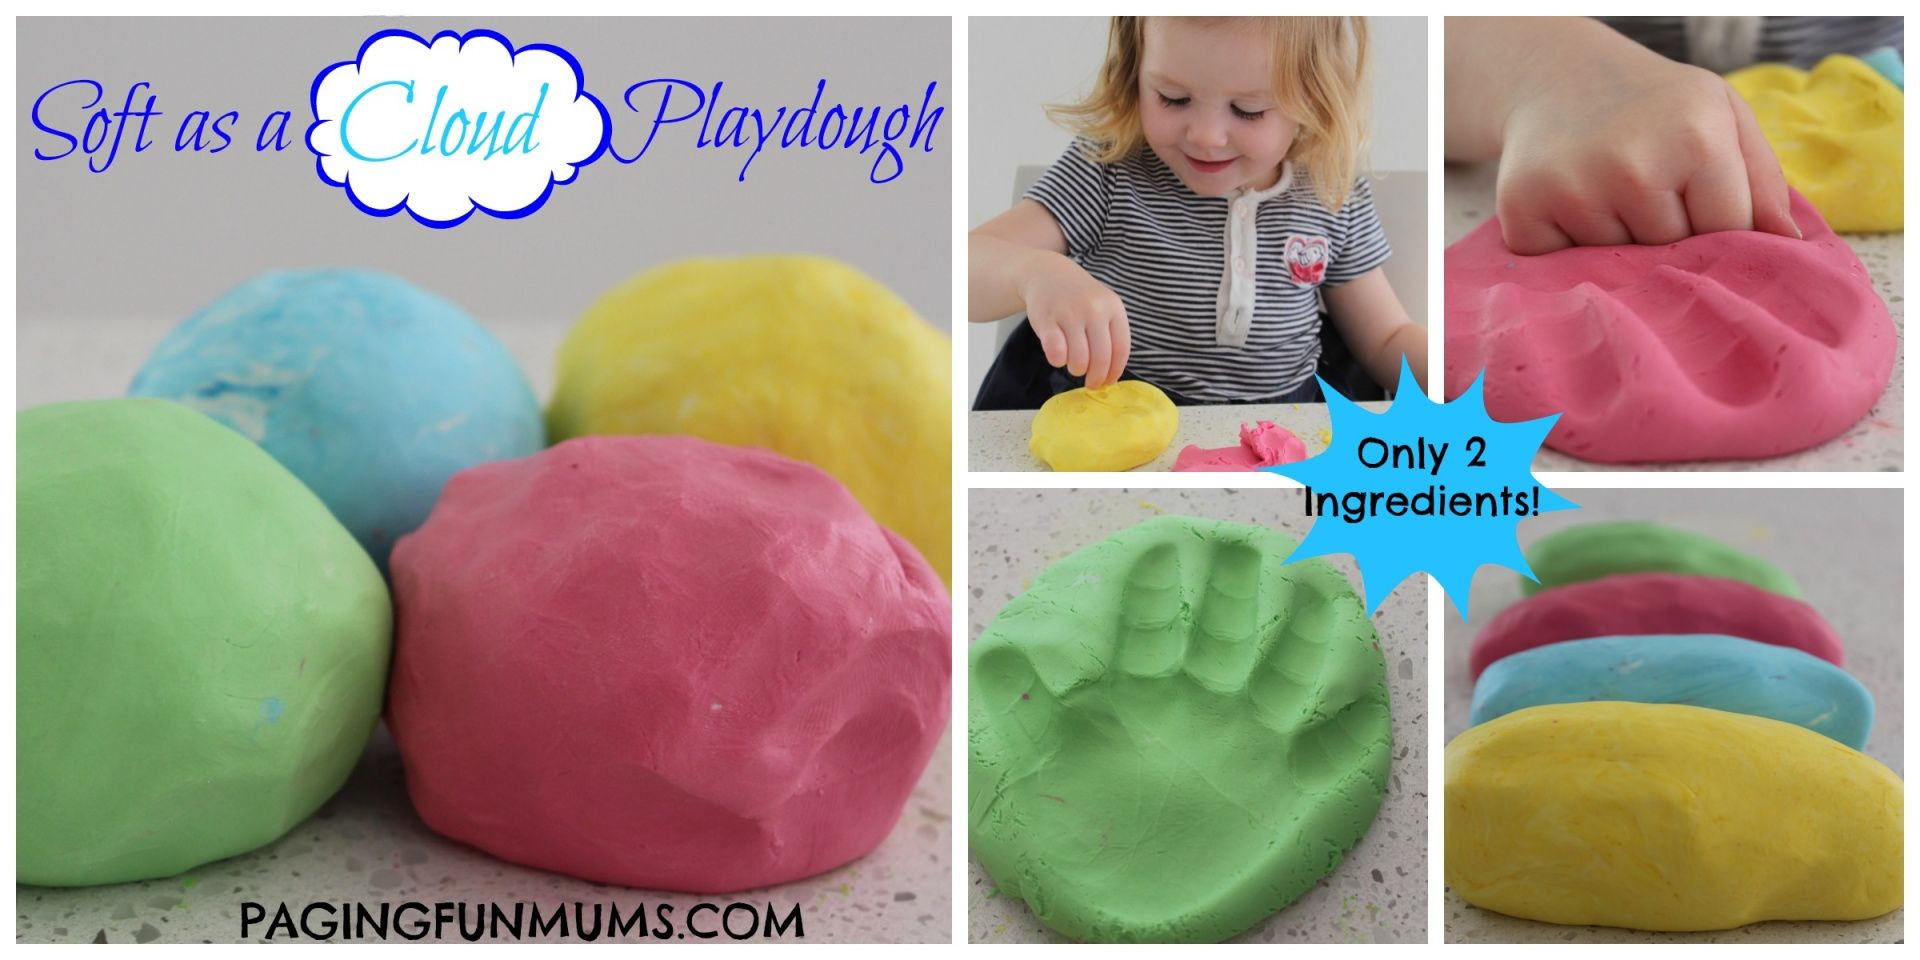 'Soft as a Cloud' Playdough…using only 2 ingredients! 1 part conditioner, 2 parts corn starch or corn flour. Food coloring optional